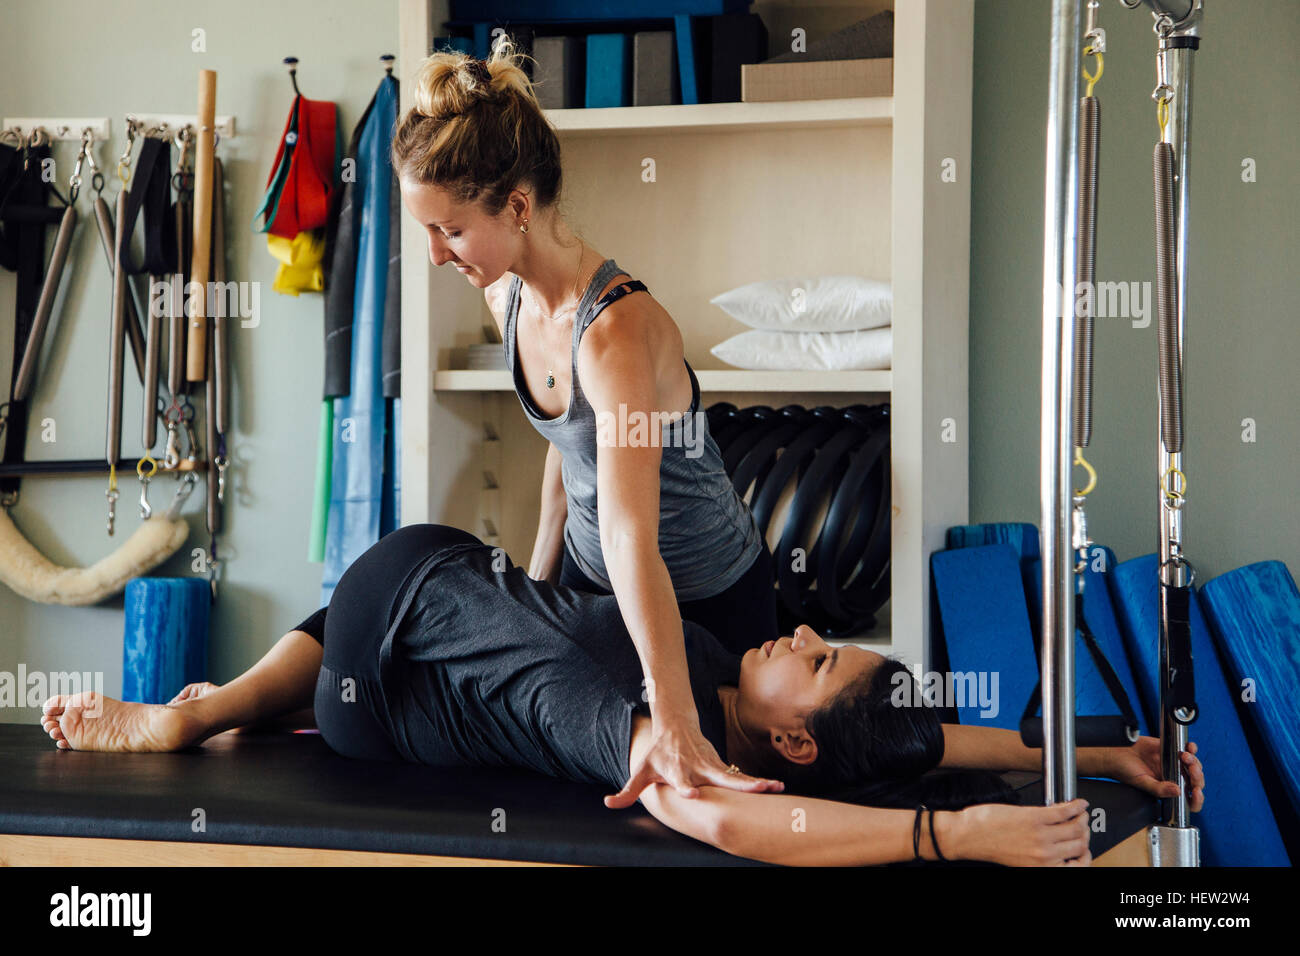 Woman and personal trainer using pilates reformer - Stock Image